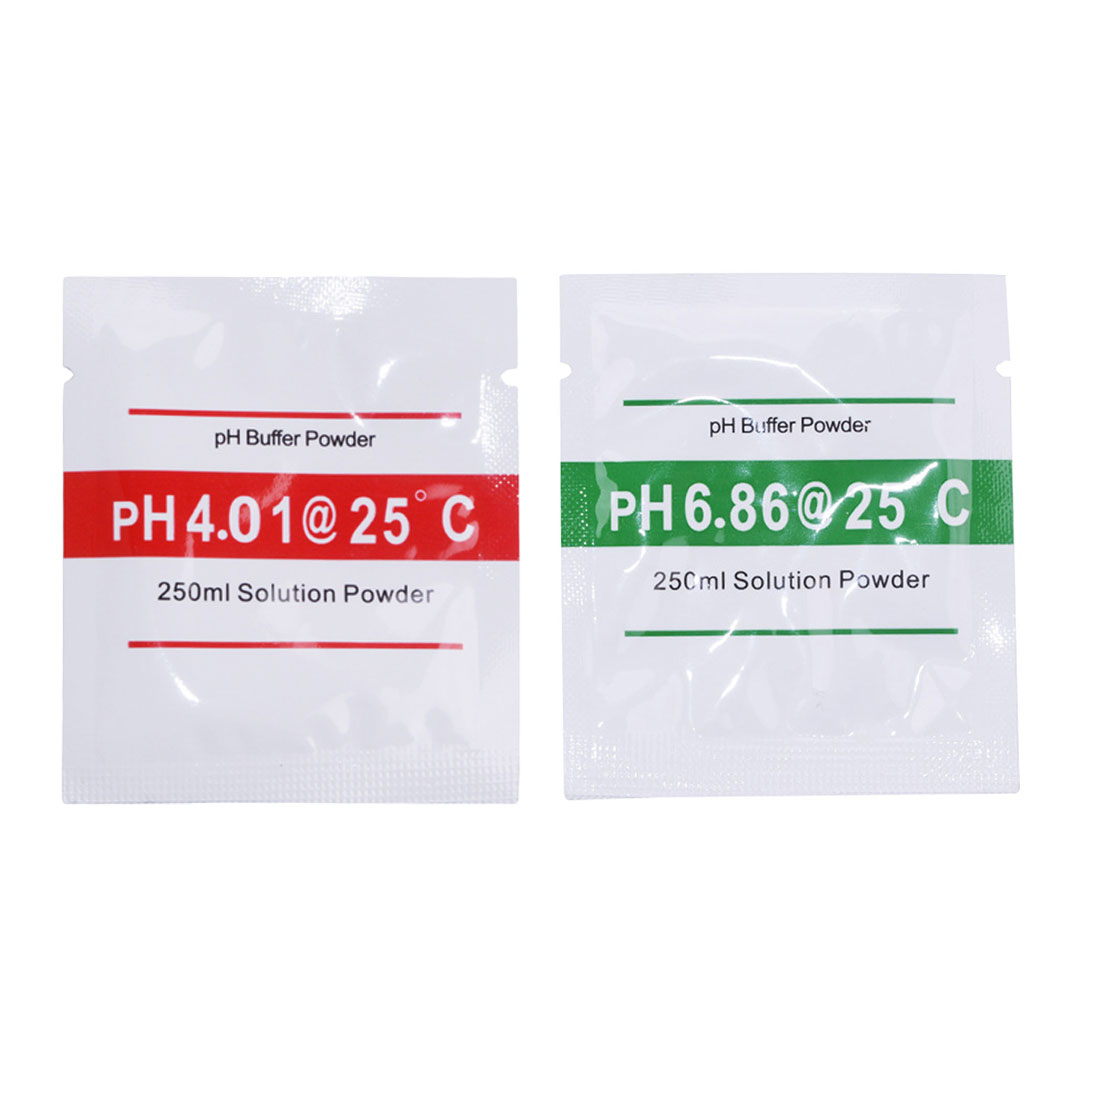 PH Correction Powder 2pcs/lot PH Buffer Powder Measure Calibration Solution 4.01/ 6.86 Calibration Point For PH Test Meter